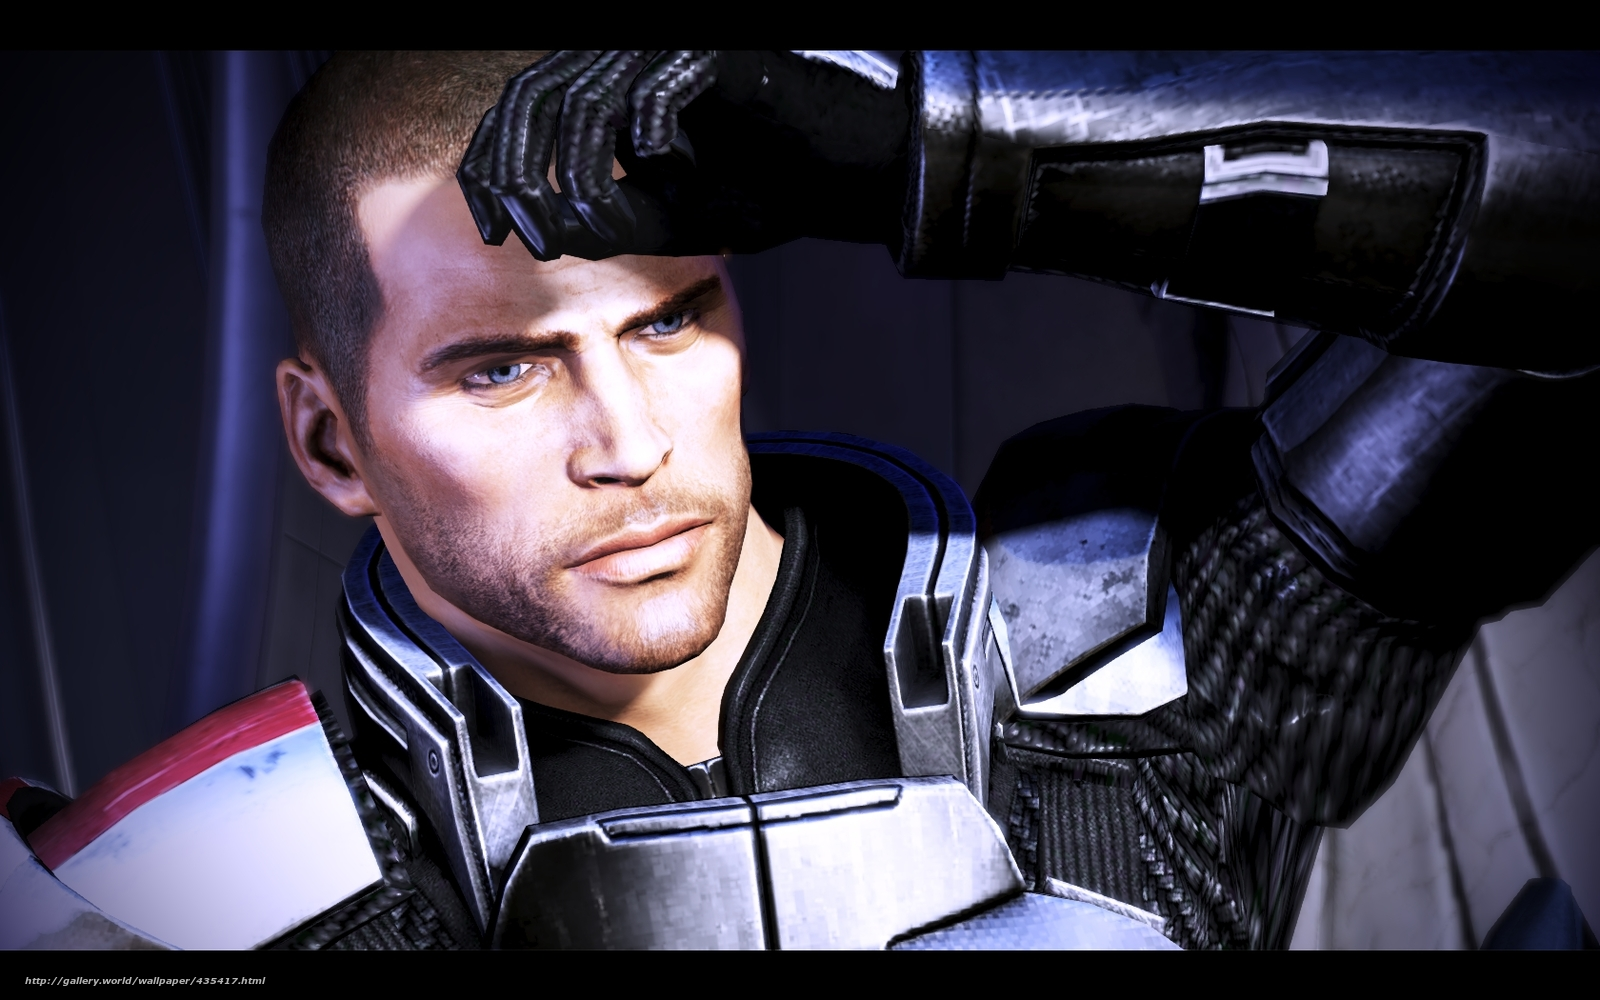 Mass effect sexcarton hentai download